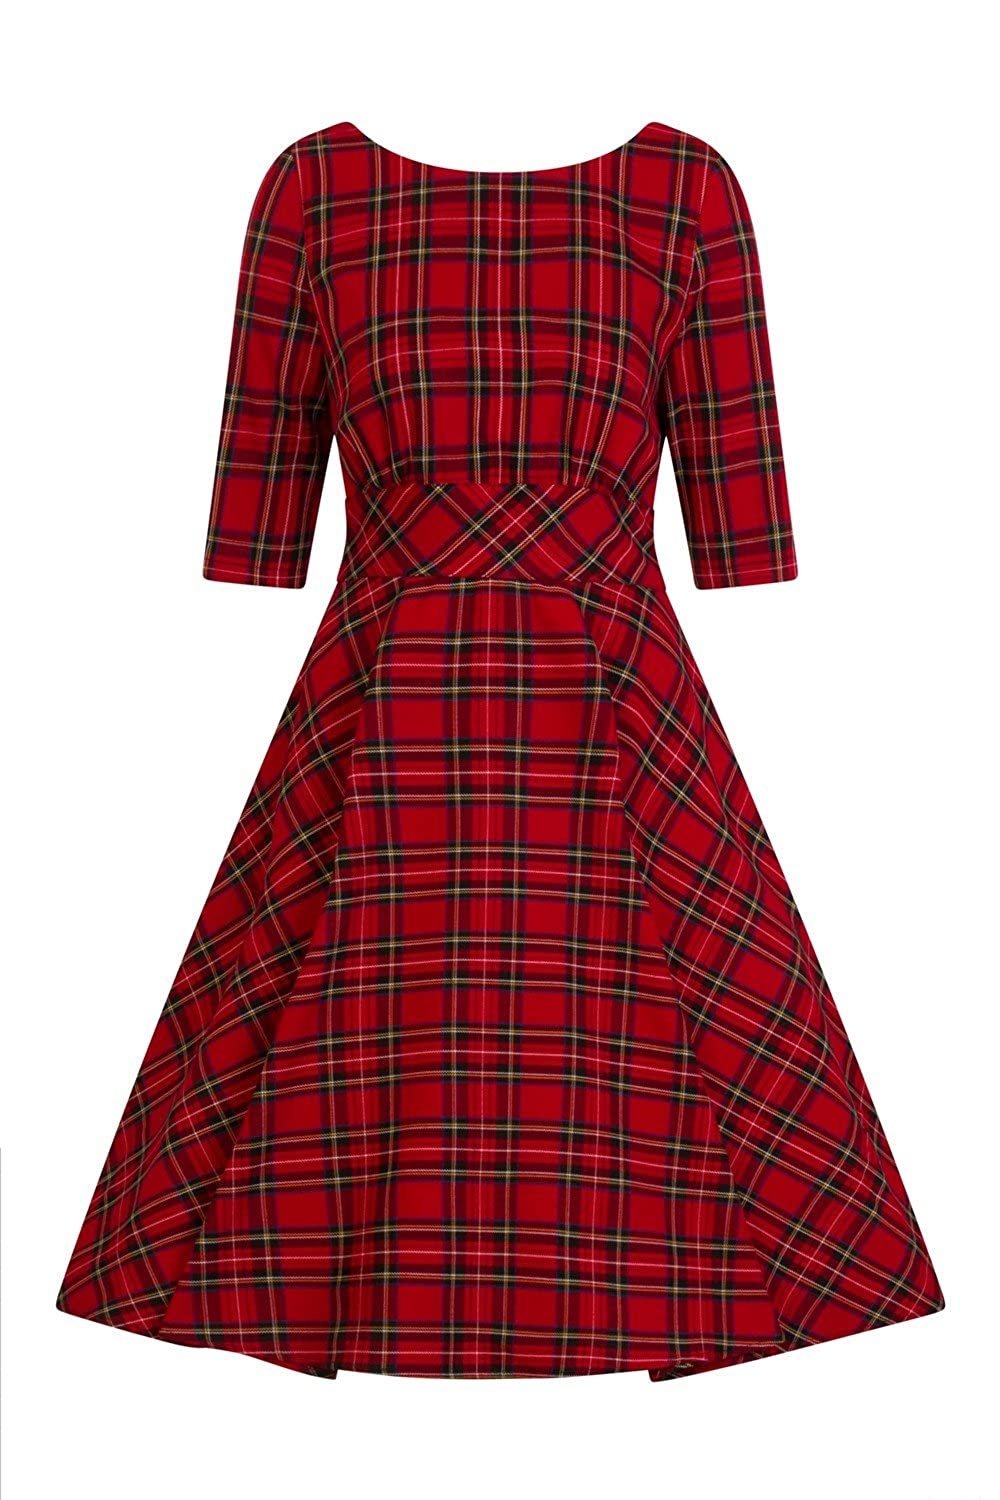 1940s Plus Size Clothing: Dresses History Hell Bunny Irvine Tartan 1950s Vintage Retro Dress XS-4XL $72.99 AT vintagedancer.com